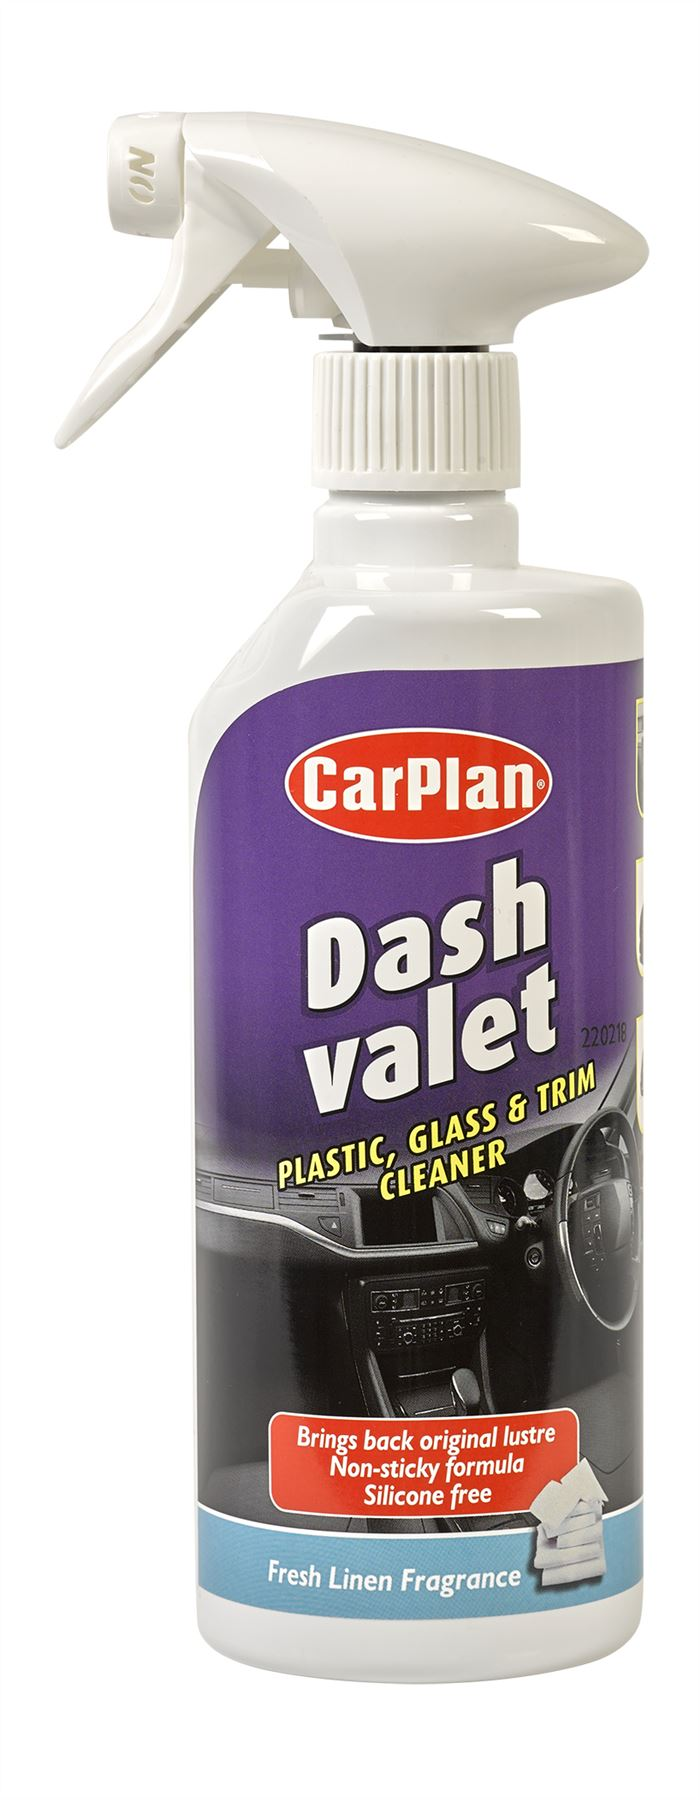 CarPlan Dash Valet Plastic, Glass & Trim Cleaner - 600ml